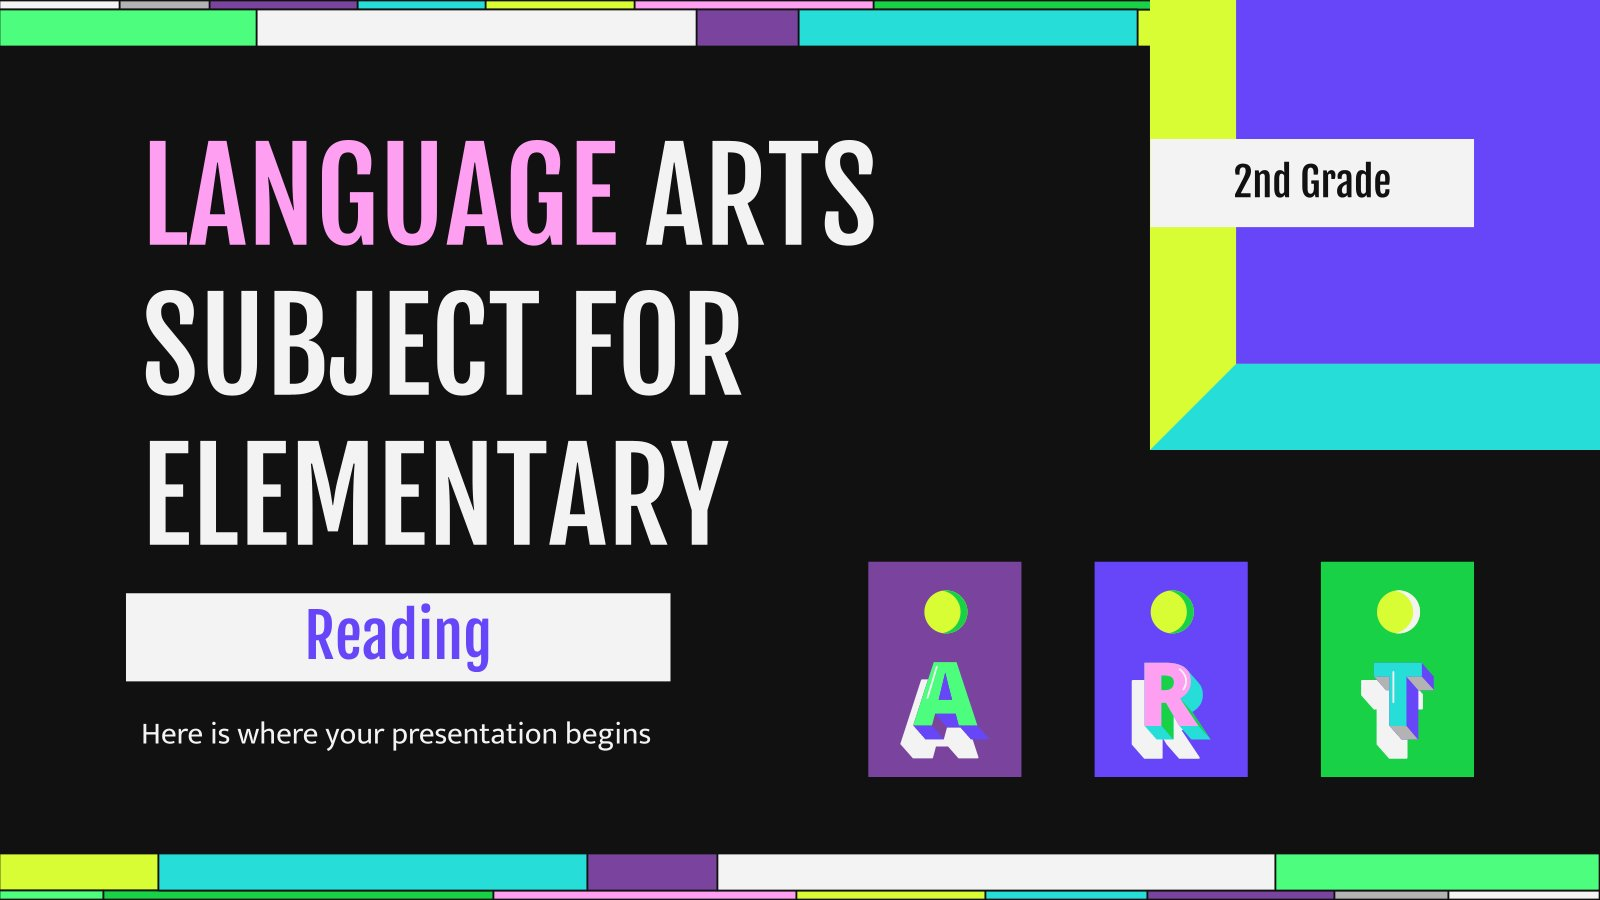 Language Arts Subject for Elementary - 2nd Grade: Reading presentation template